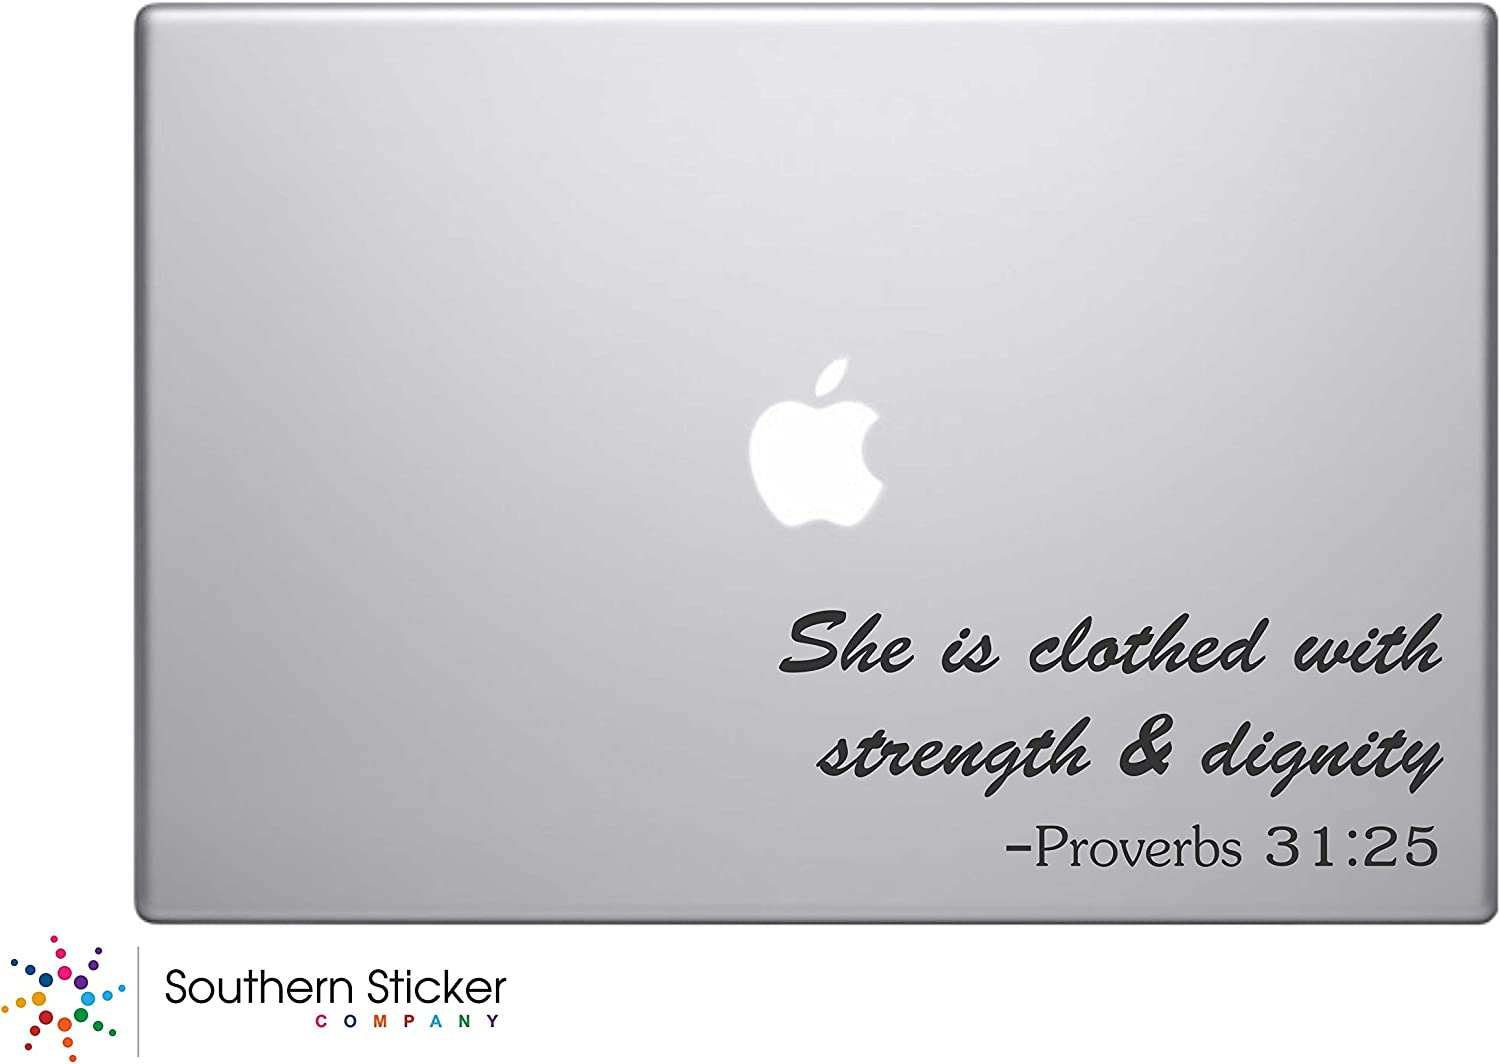 She Is Clothed with Strength and Dignity Text Bible Verse Vinyl Car Sticker Silhouette Keypad Track Pad Decal Laptop Skin Ipad Macbook Window Truck Motorcycle